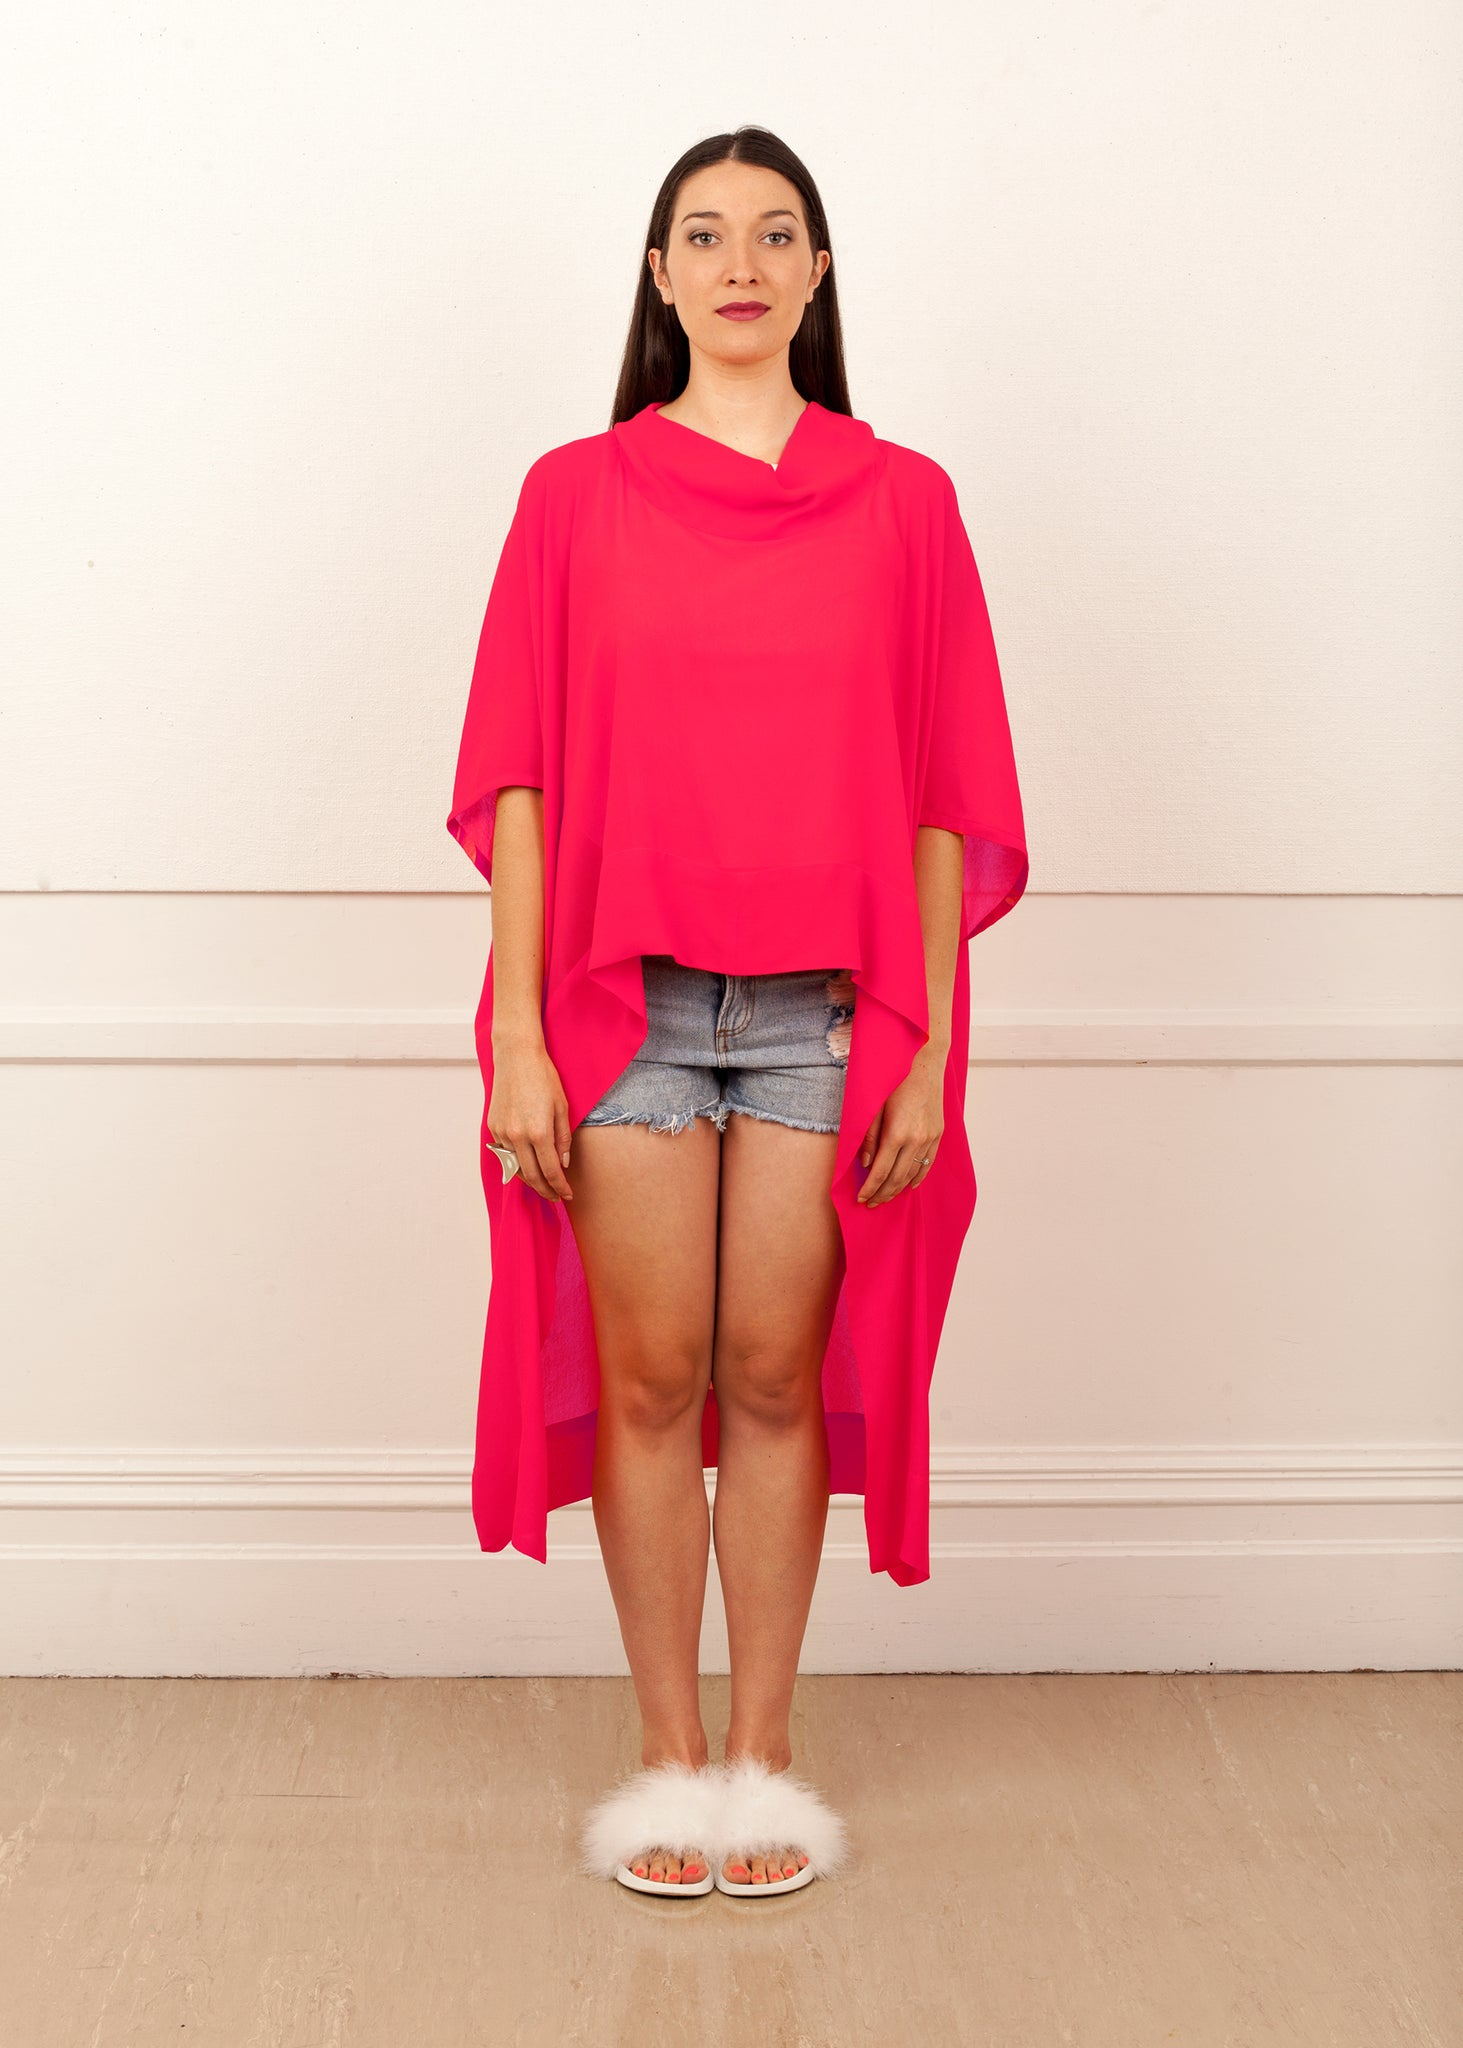 Fraser Crowe It's All Academic Top Pink, ethical fashion, sustainable fashion, designer clothes, plus size clothing, textile print clothing, luxury online fashion, slow fashion